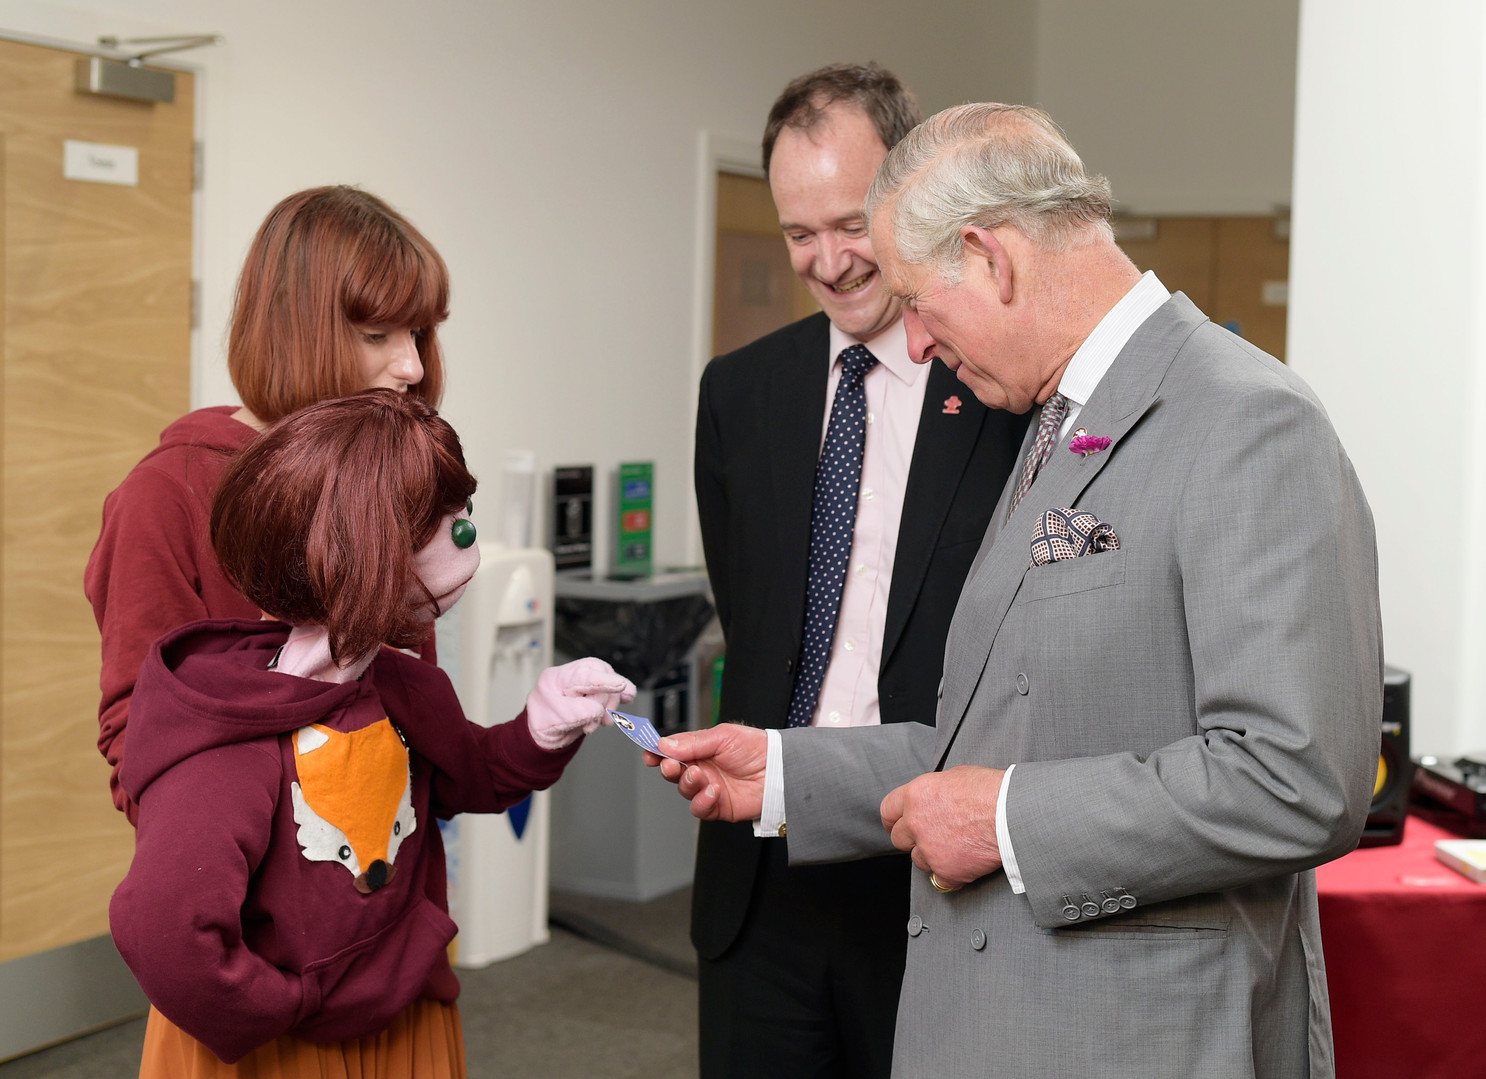 We met Prince Charles as part of the opening of the Princestrust